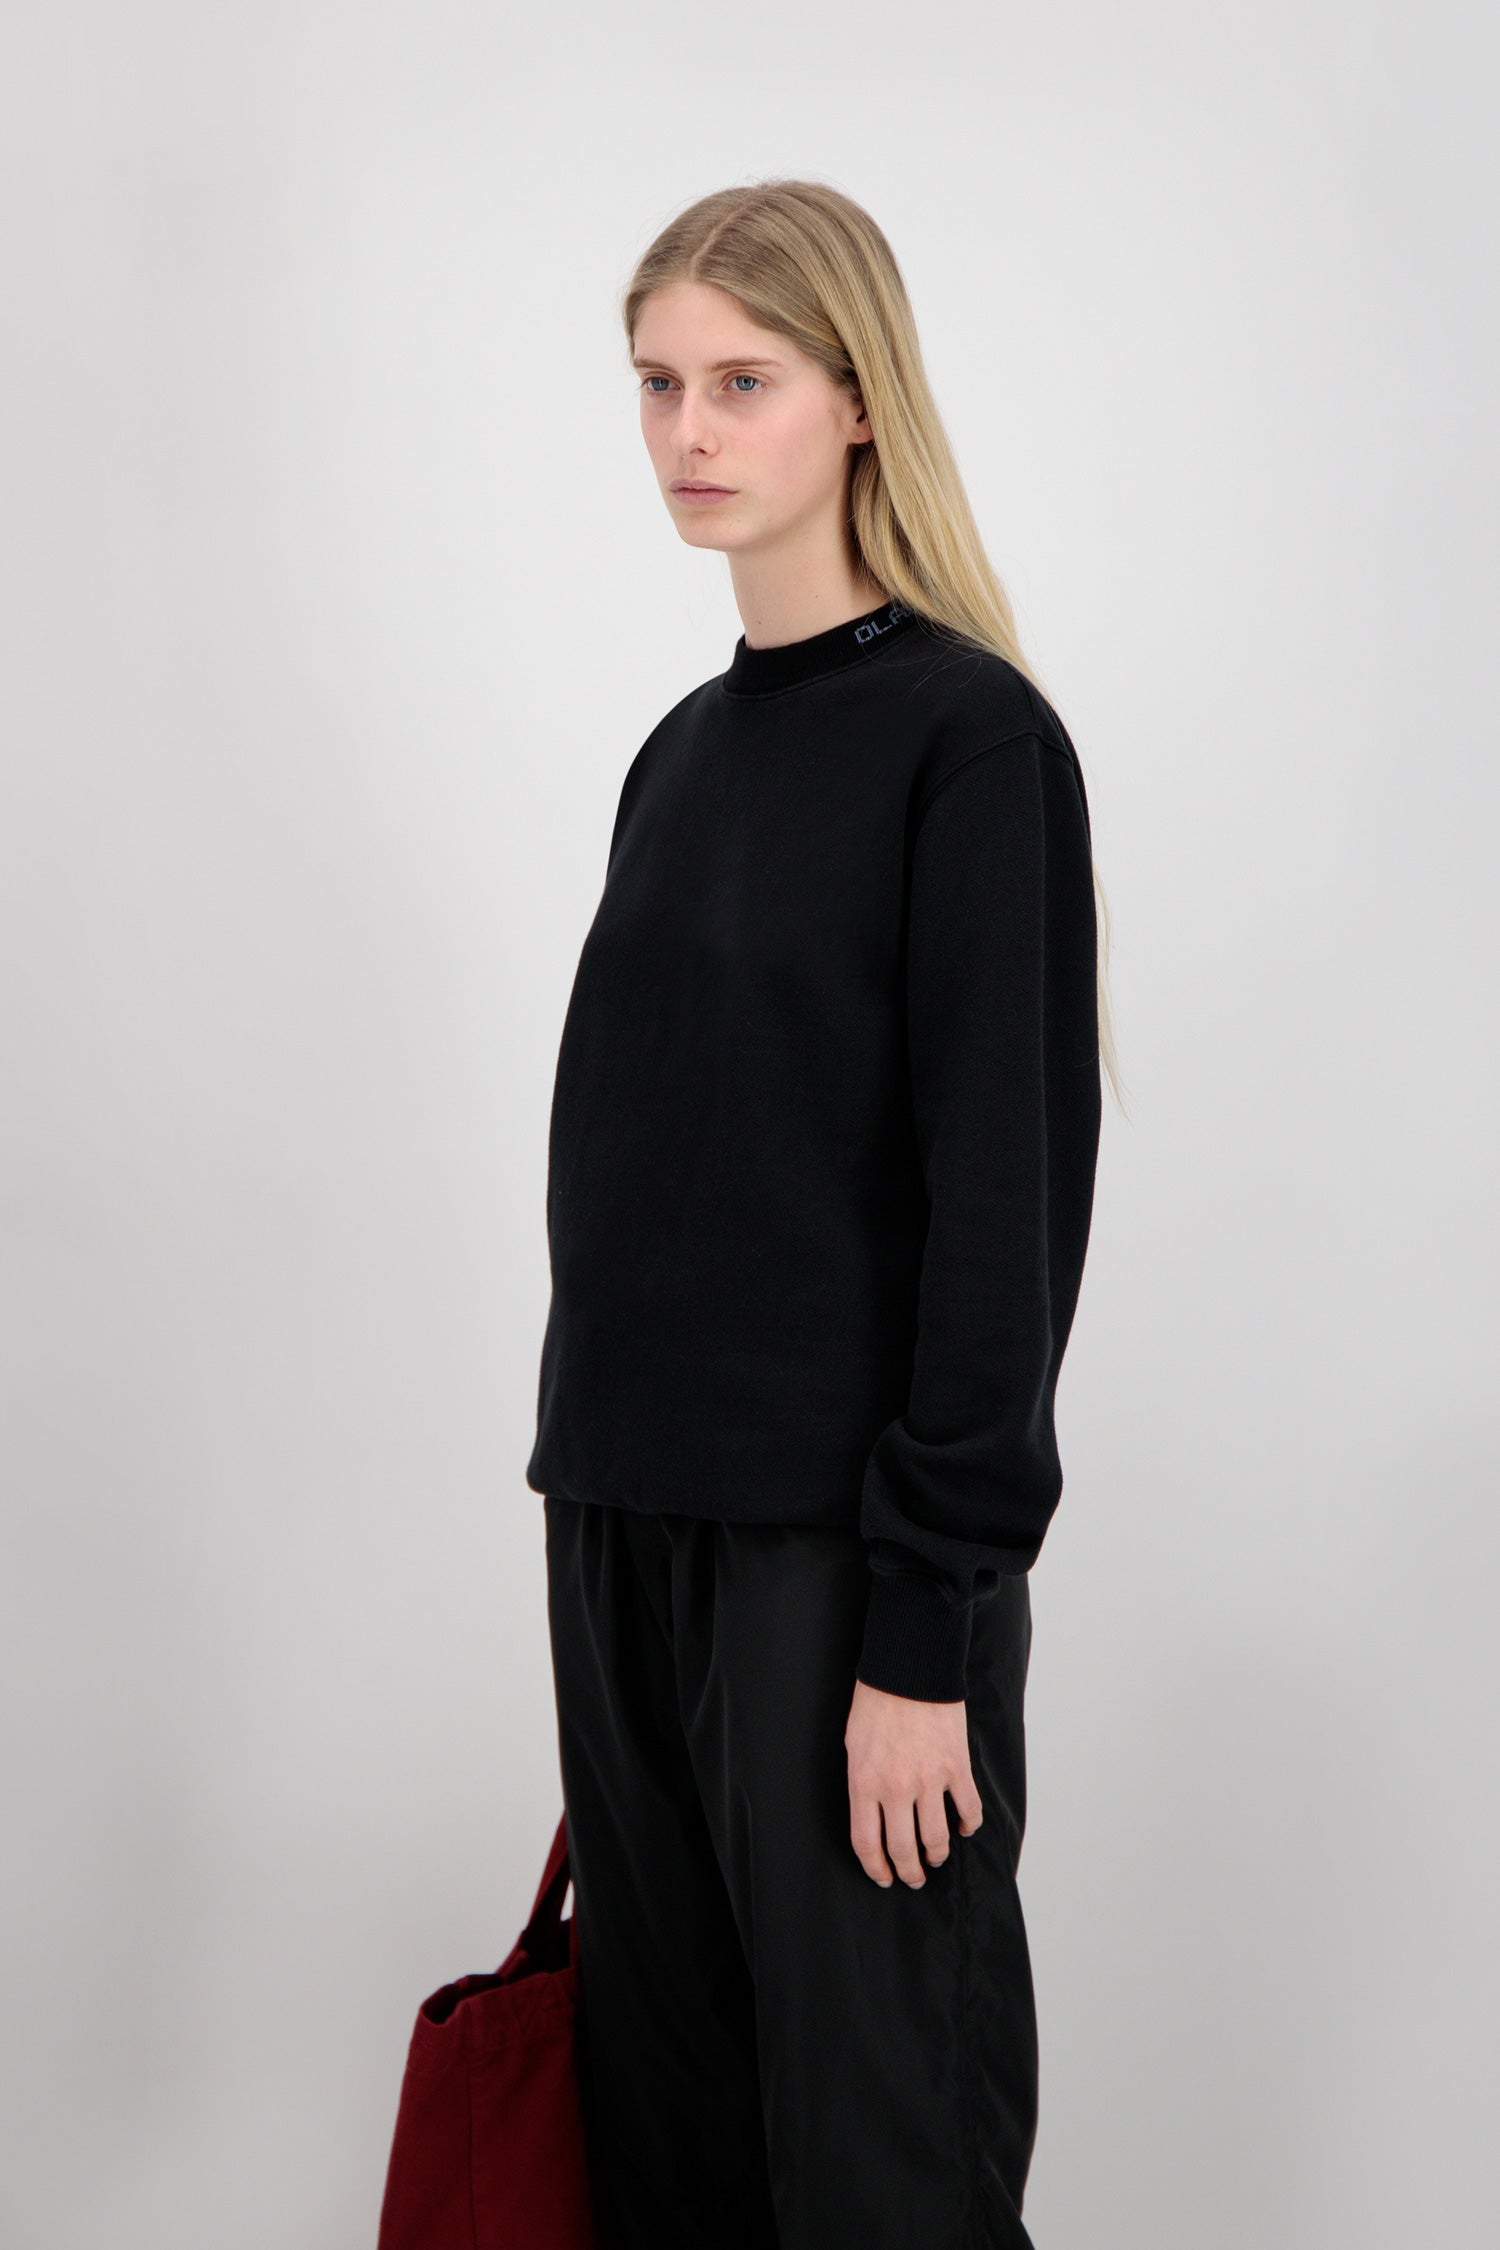 ØLÅF Crewneck <br>Black/Navy